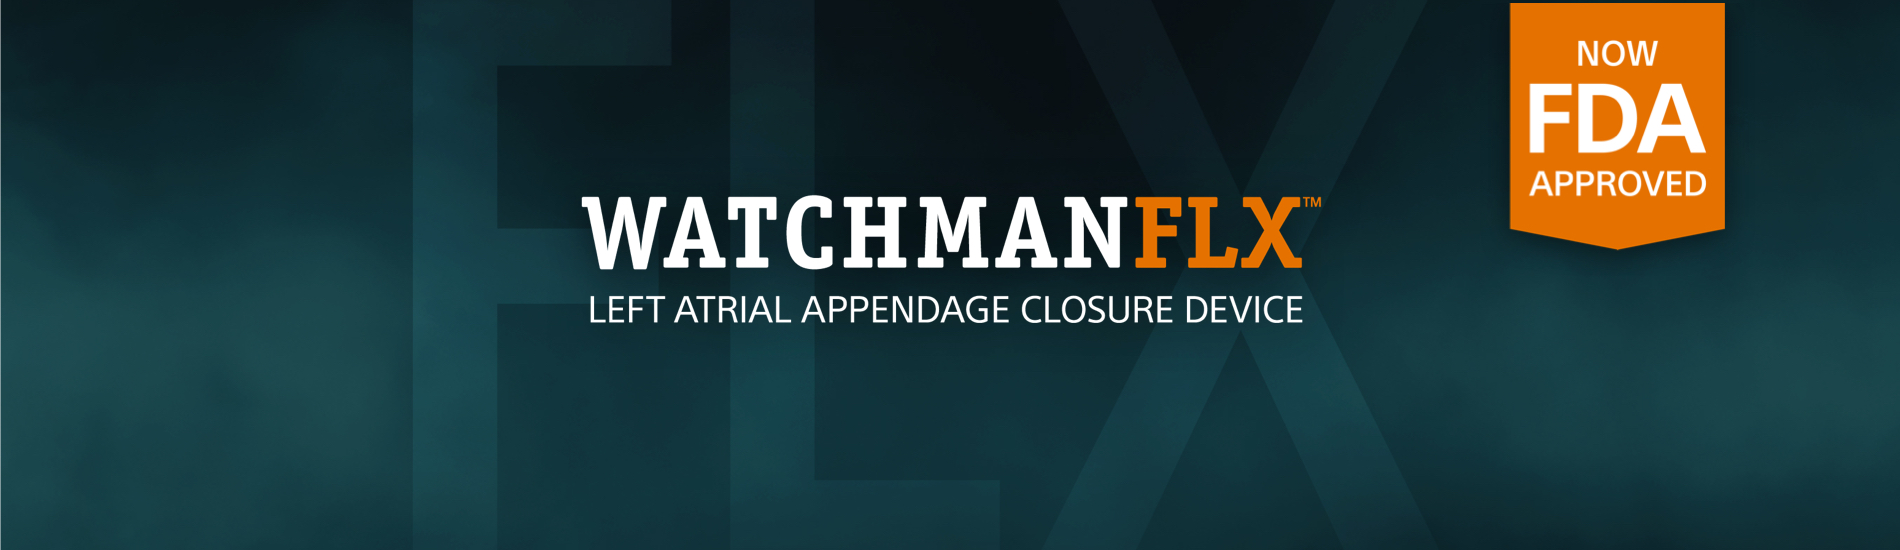 WATCHMAN FLX Left Atrial Appendage Closure Device